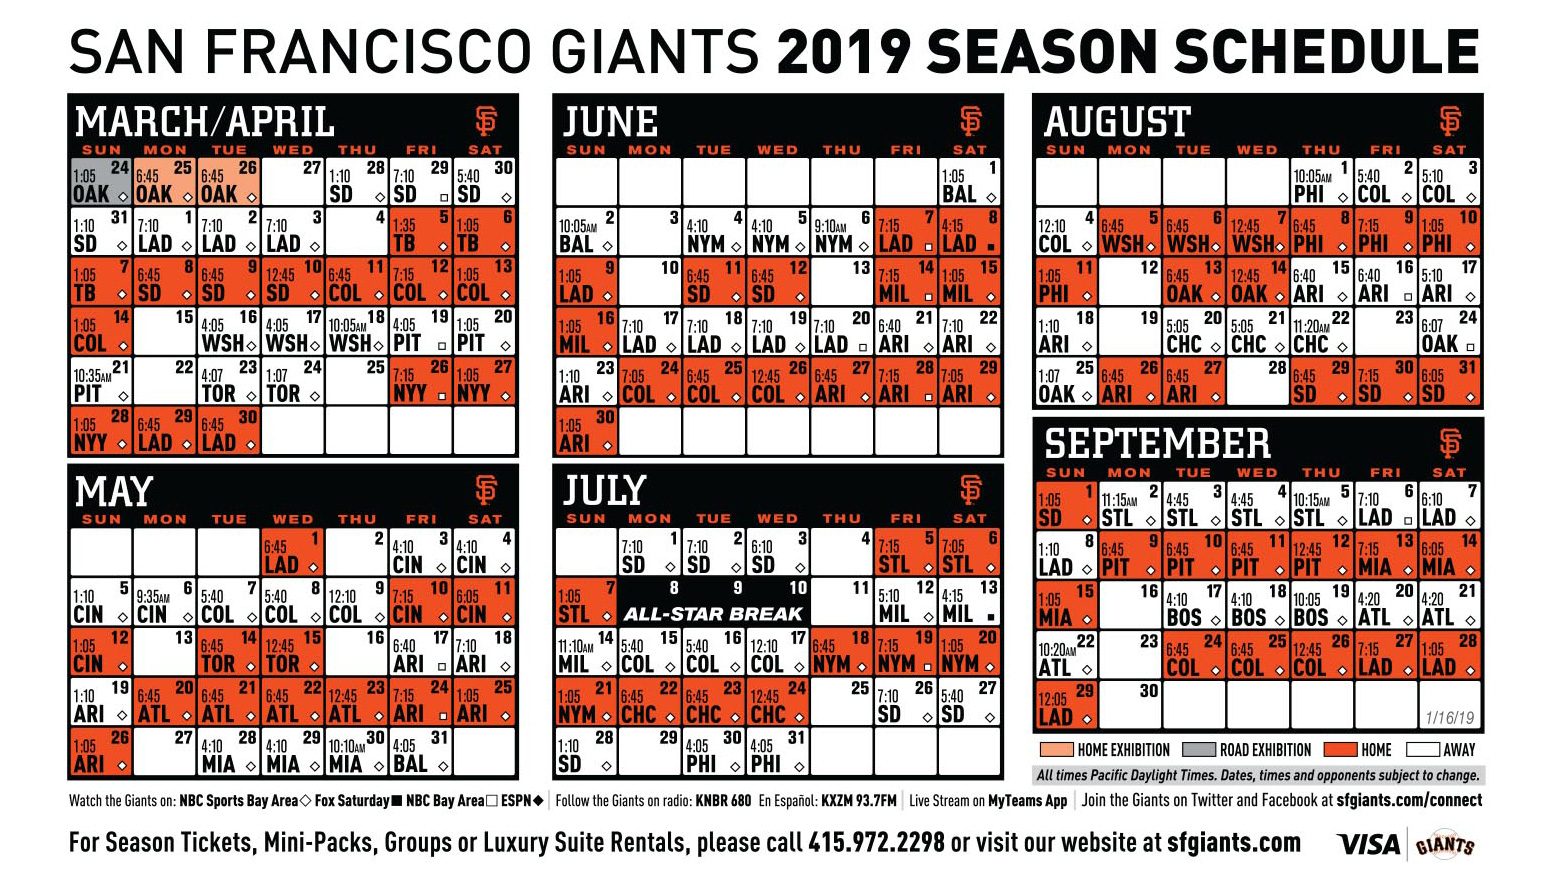 graphic regarding Printable Detroit Tigers Schedule identified as Giants 2019 Printable Agenda San Francisco Giants